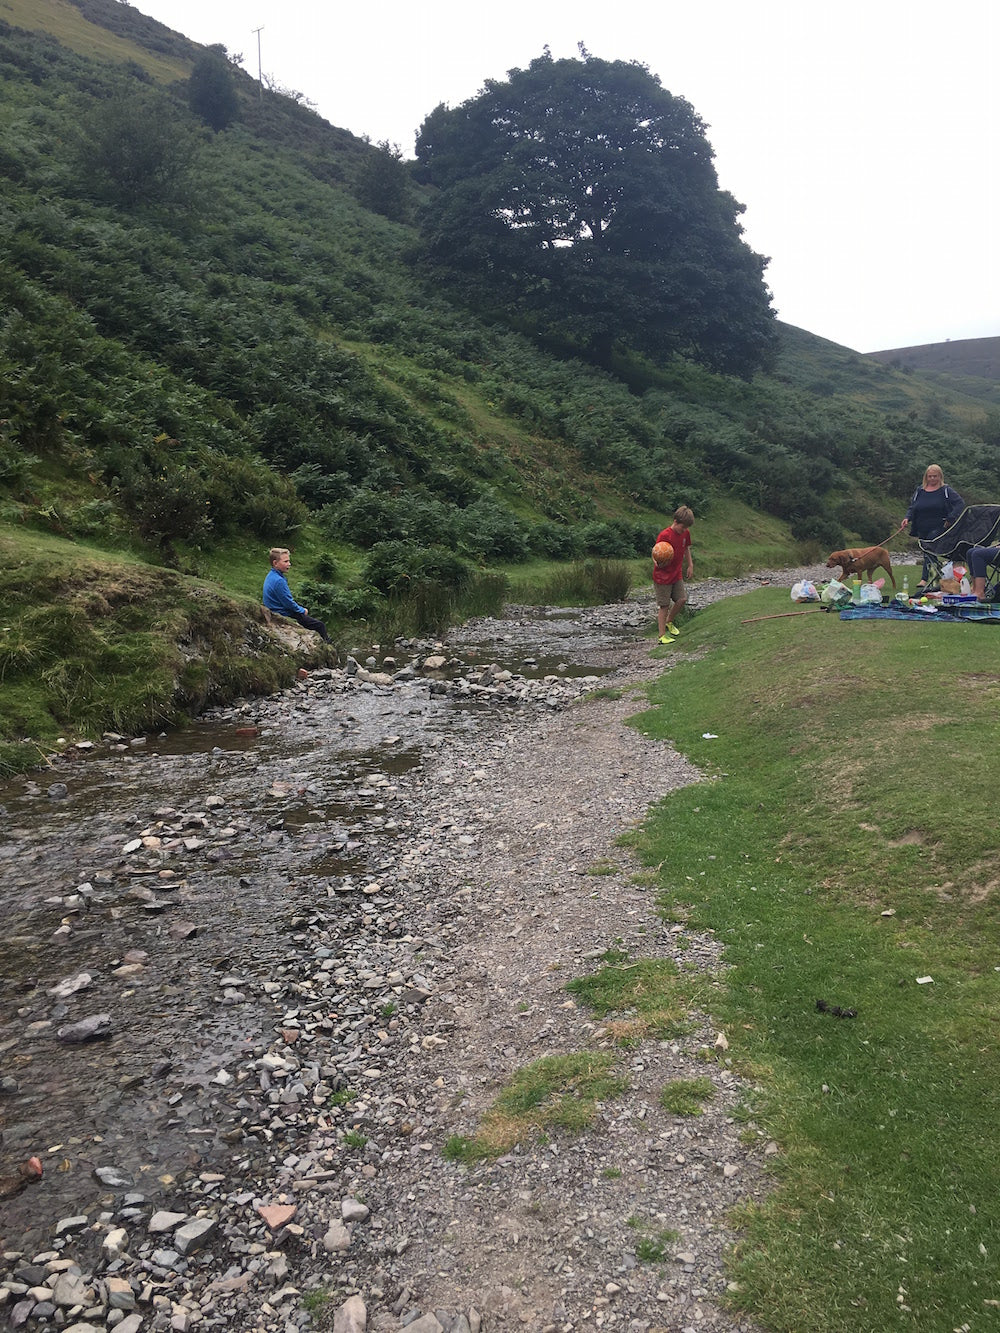 Things to do in the Shropshire Hills - Carding Mill Valley